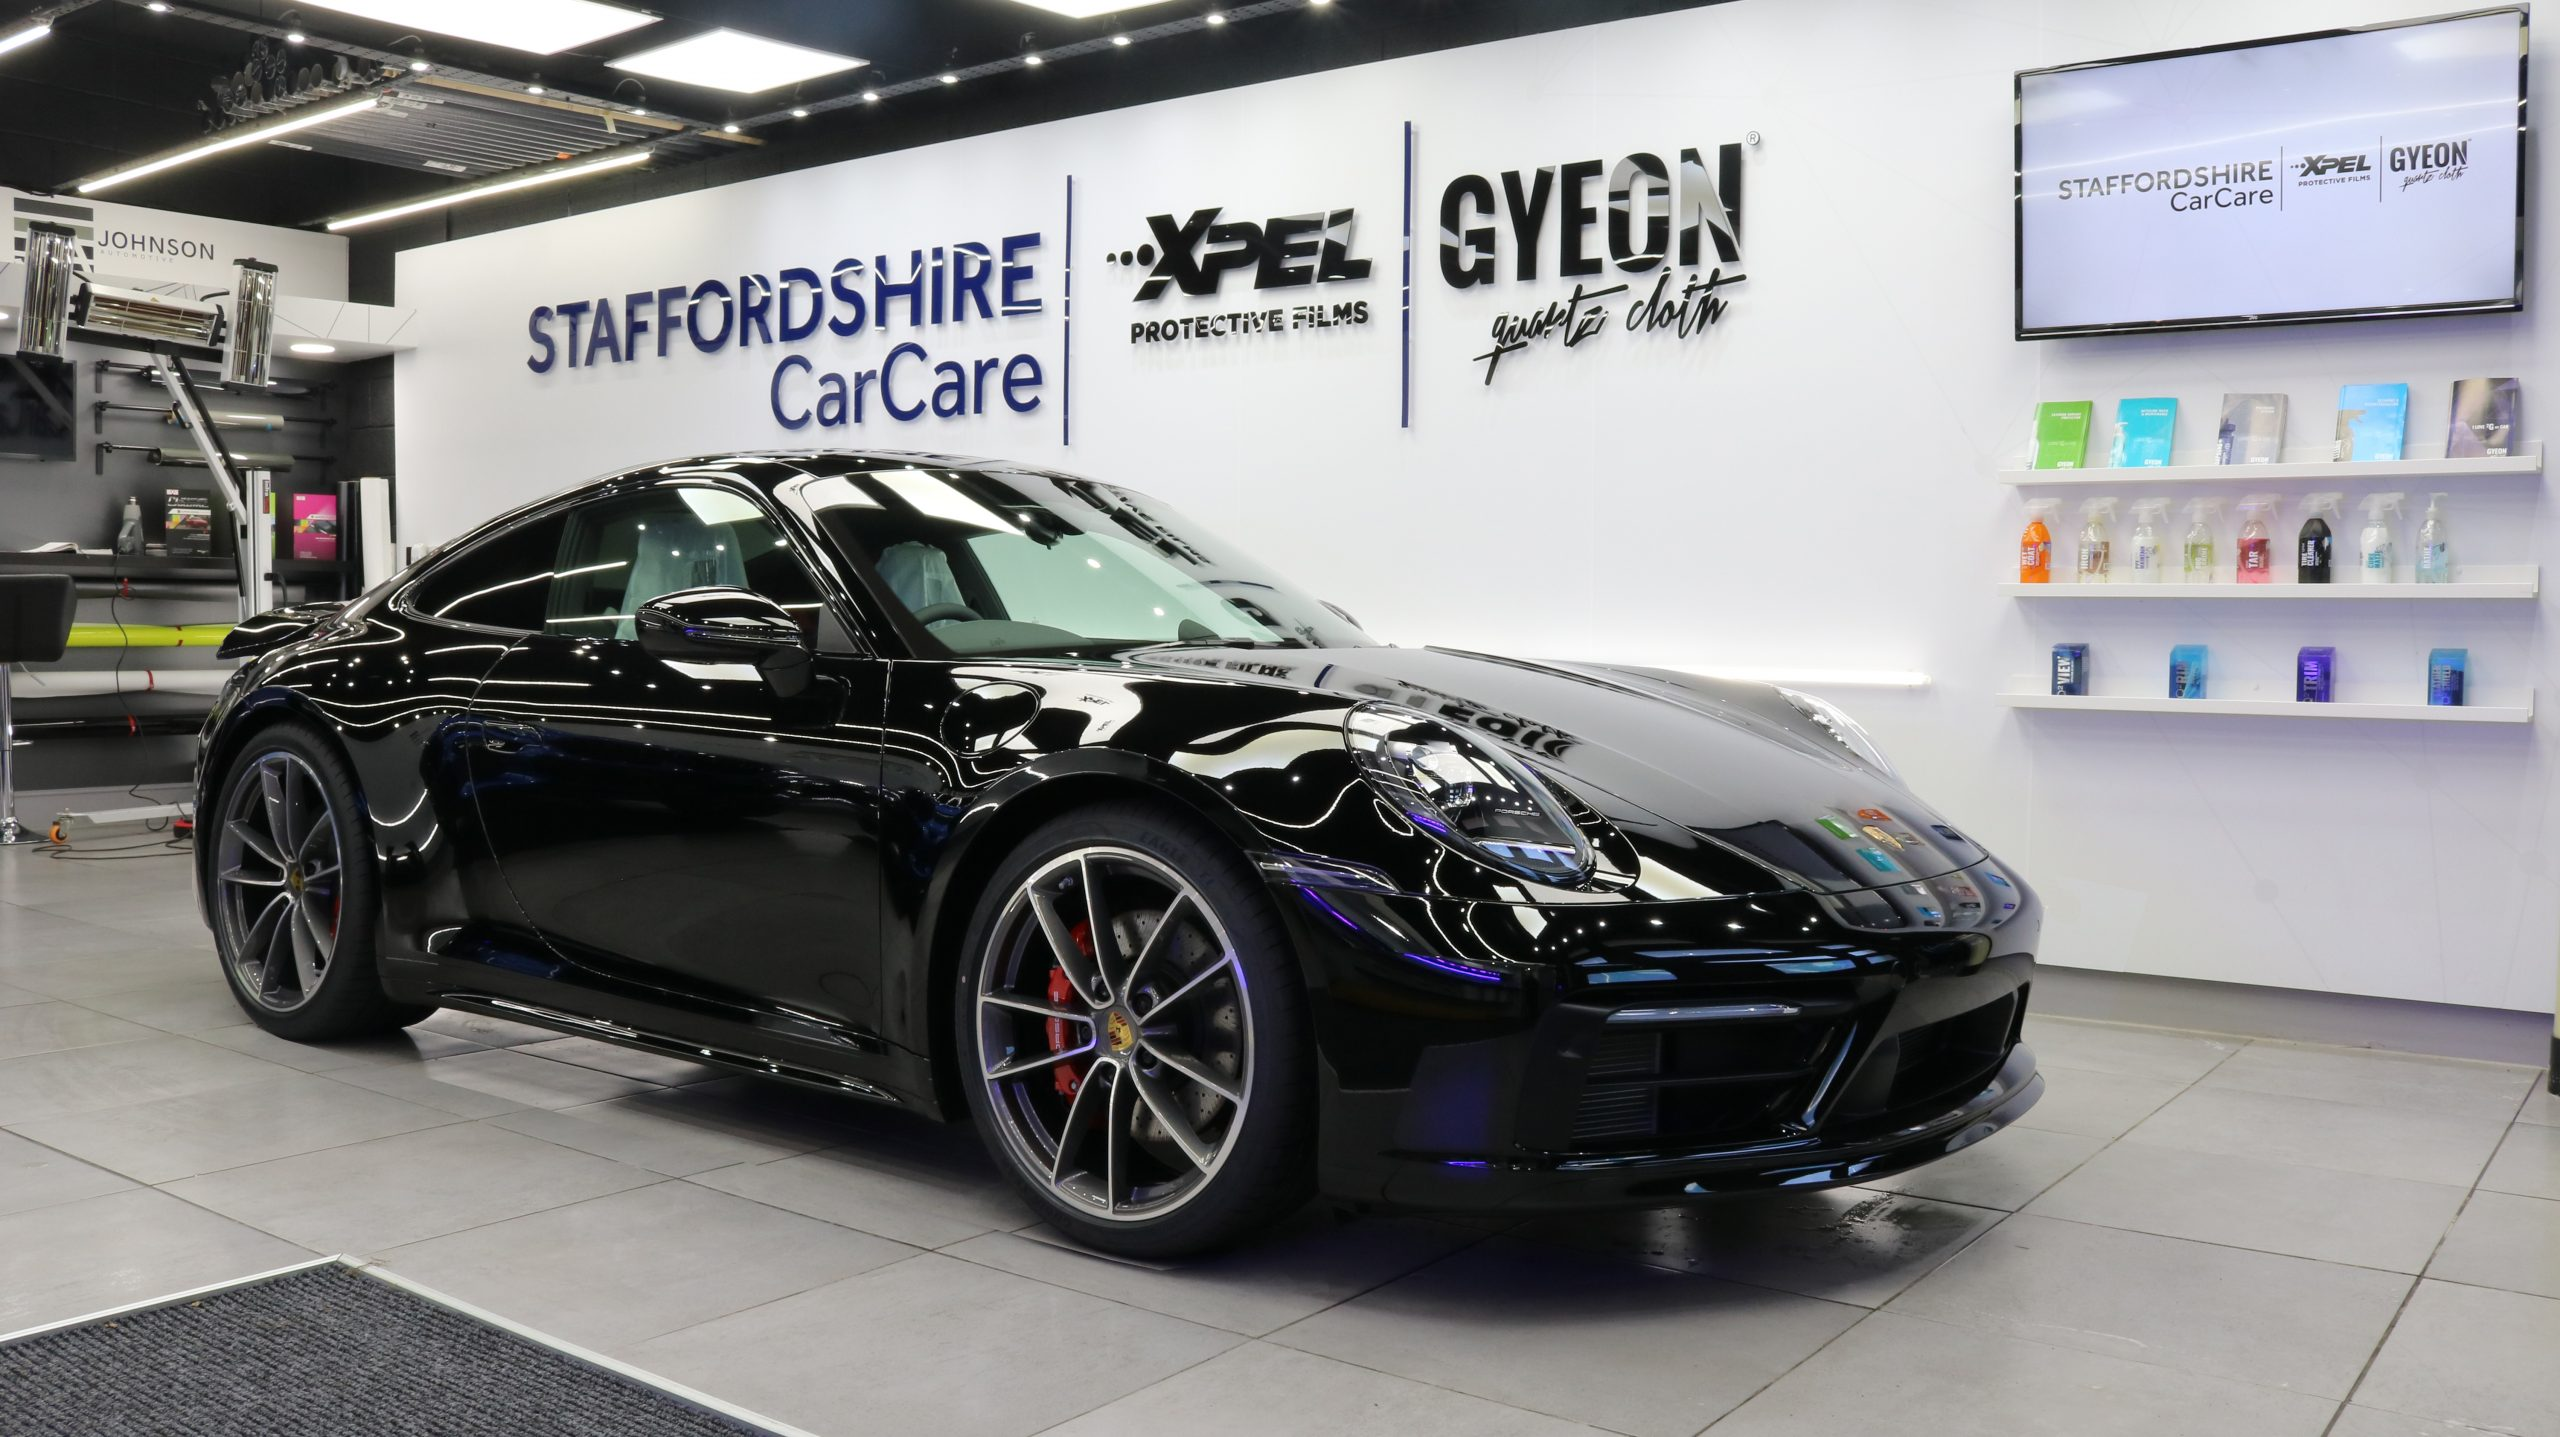 New Car Protection Treatment- After Polishing- GYEON